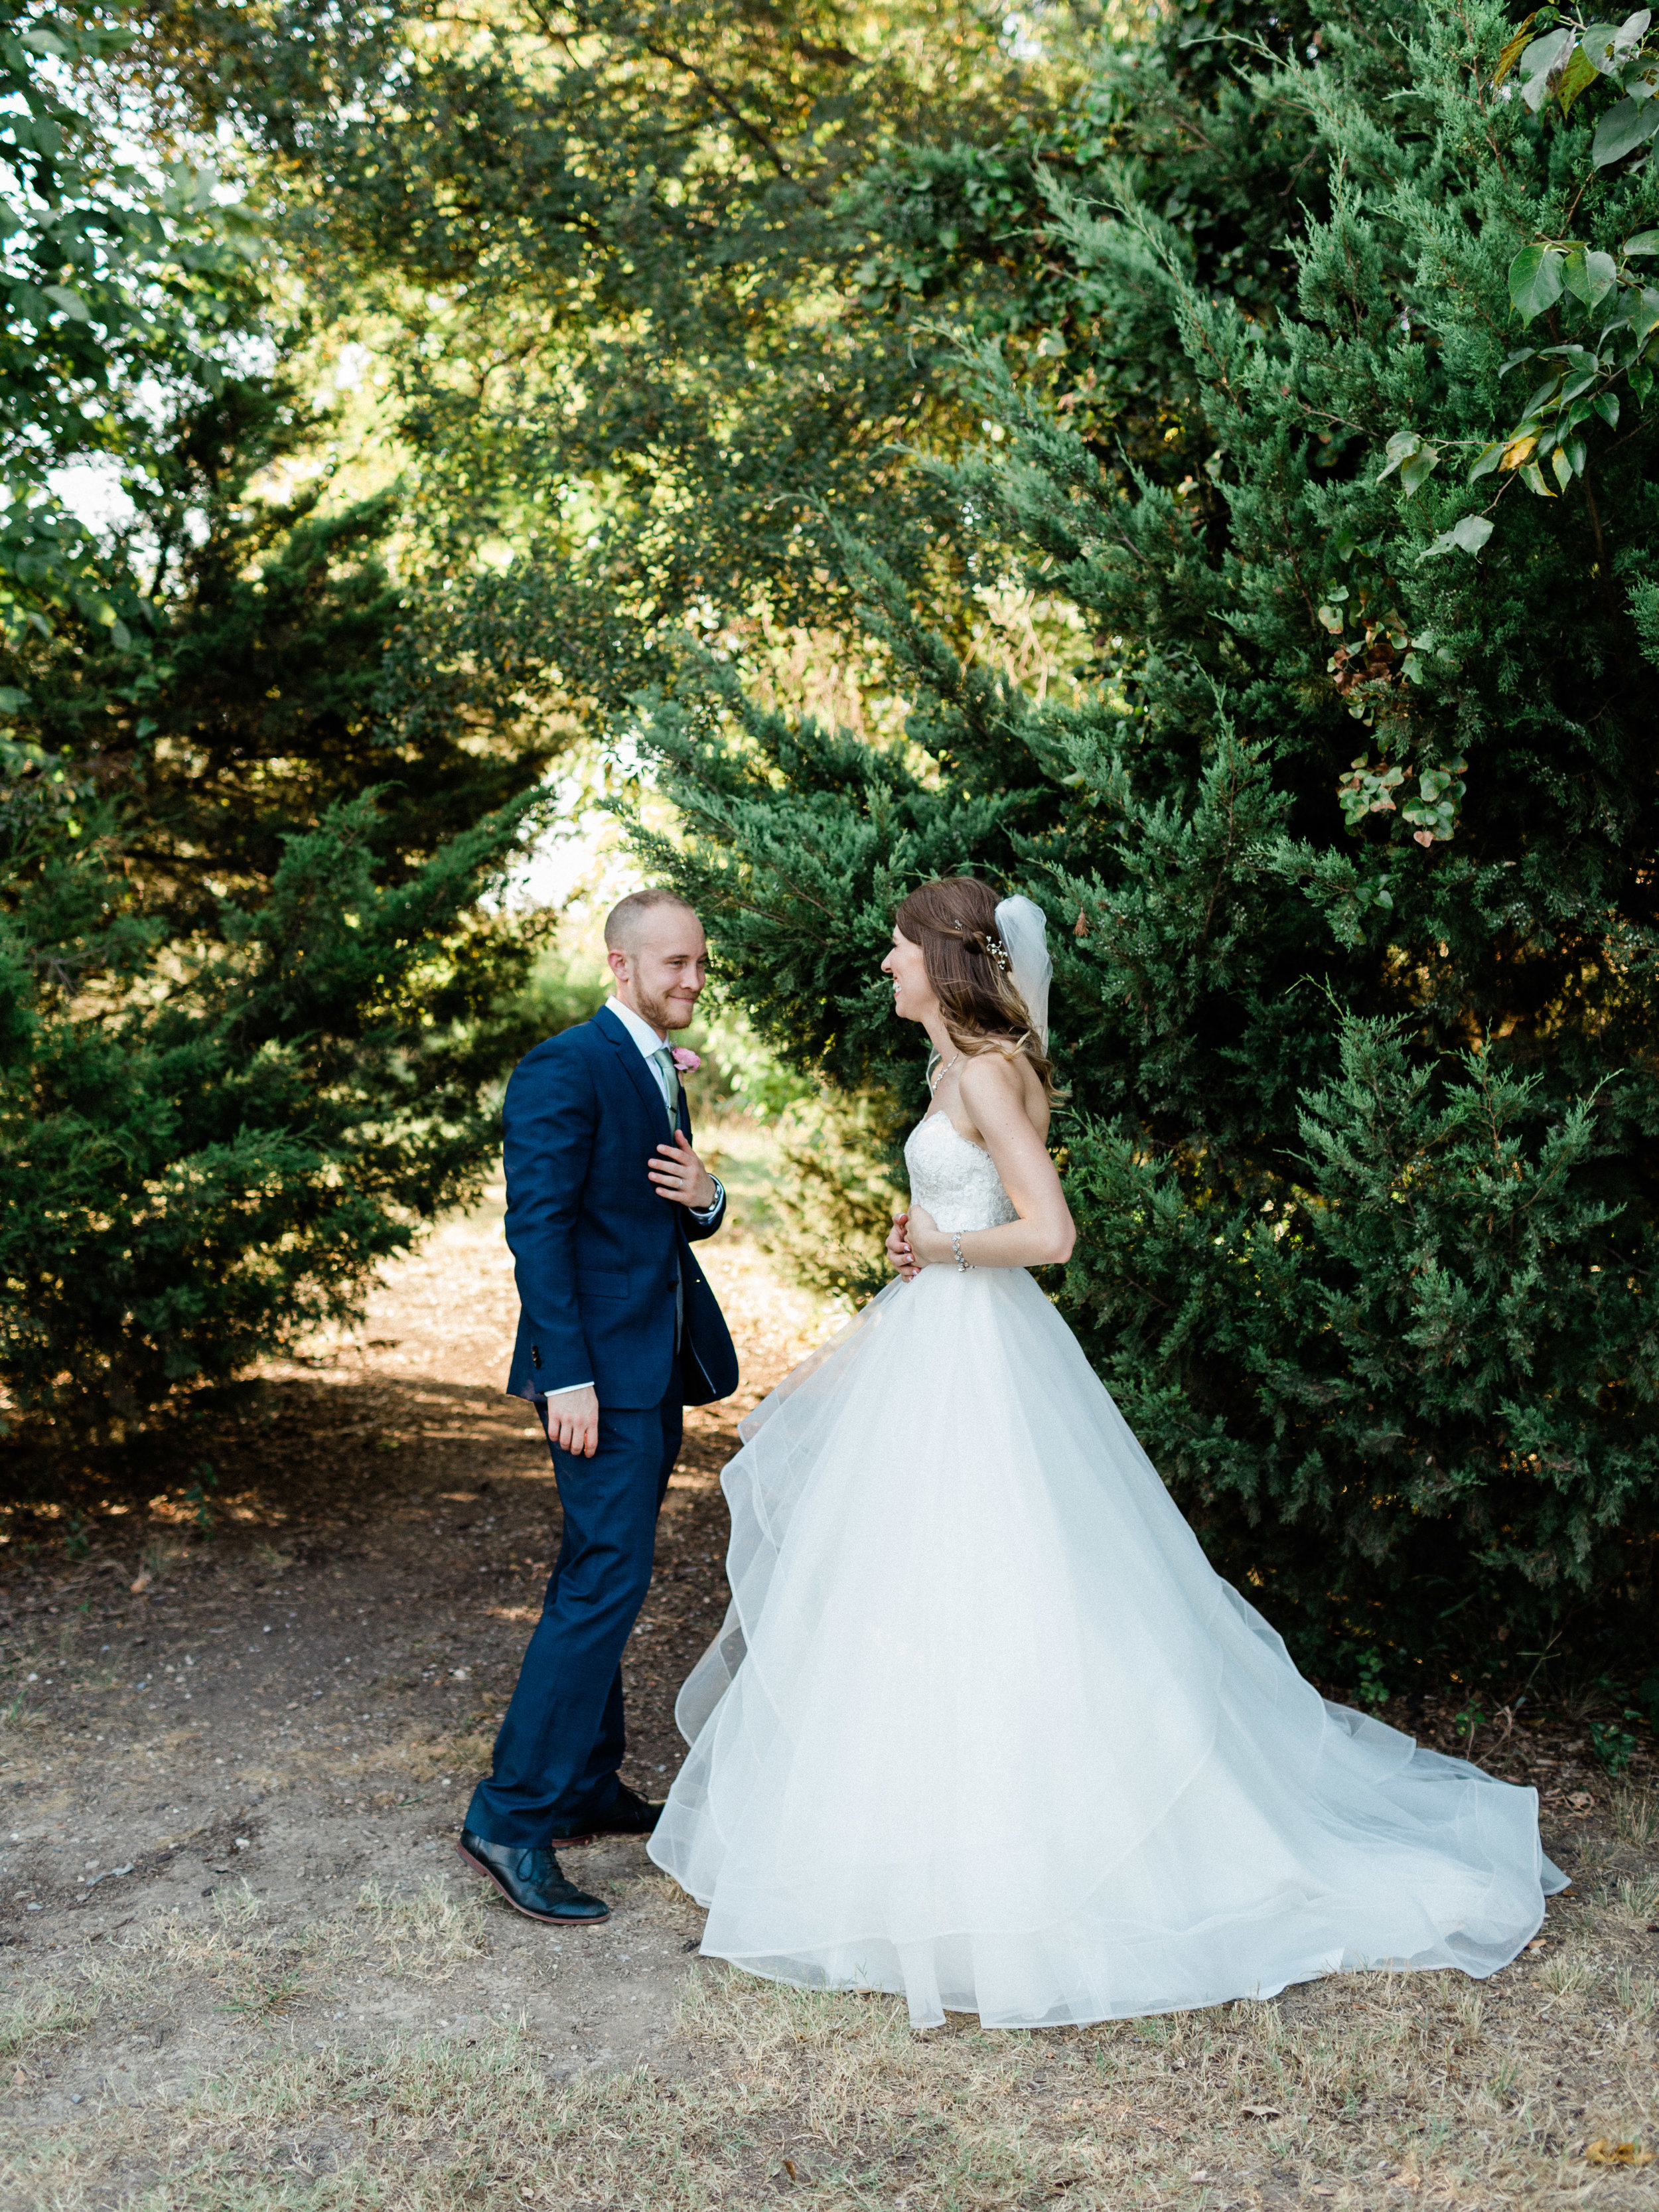 Bride and groom portraits at Chandlers gardens wedding in dfw